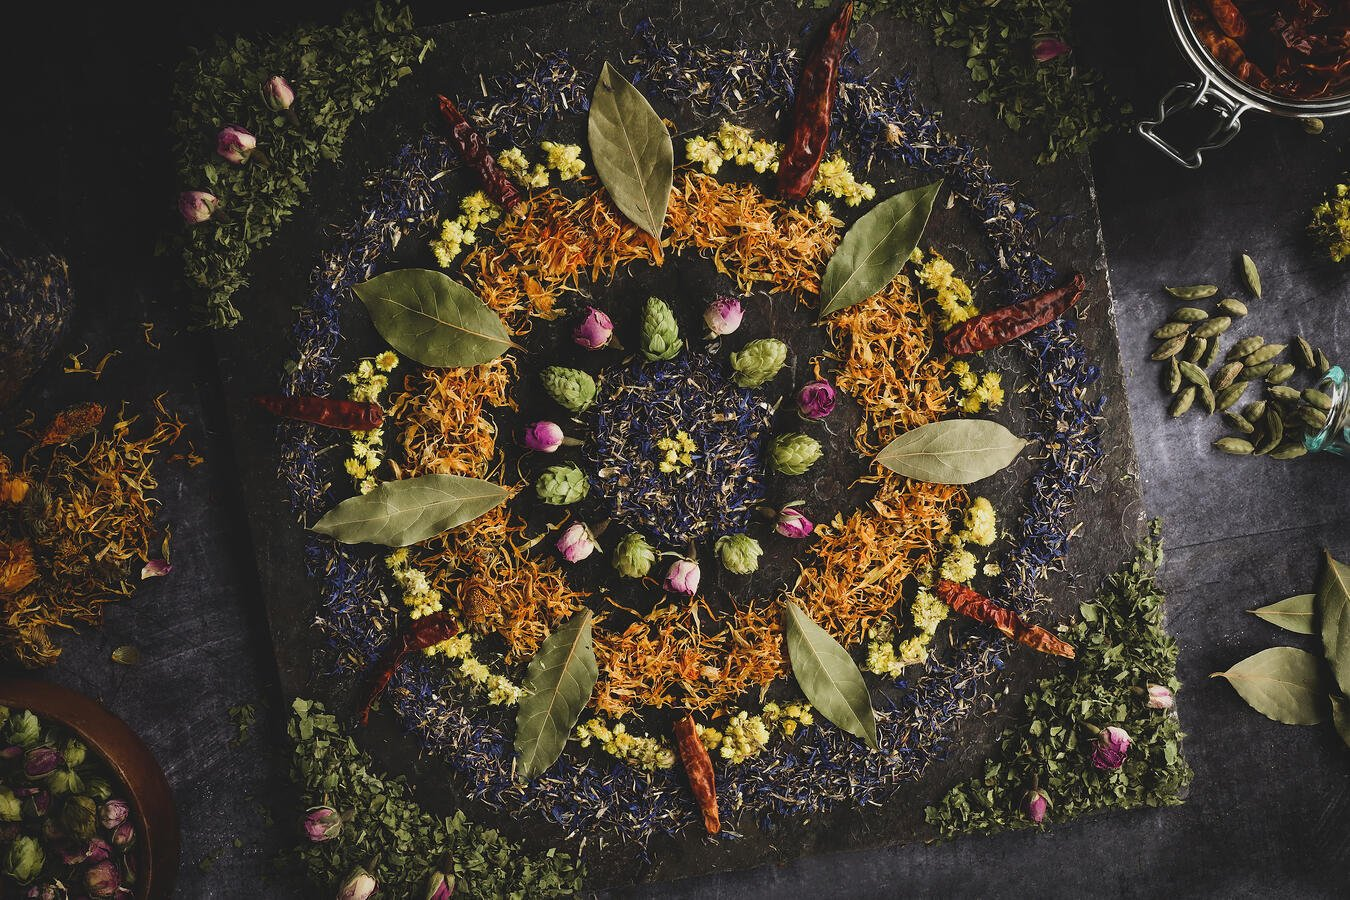 Mandala made from old herbs.